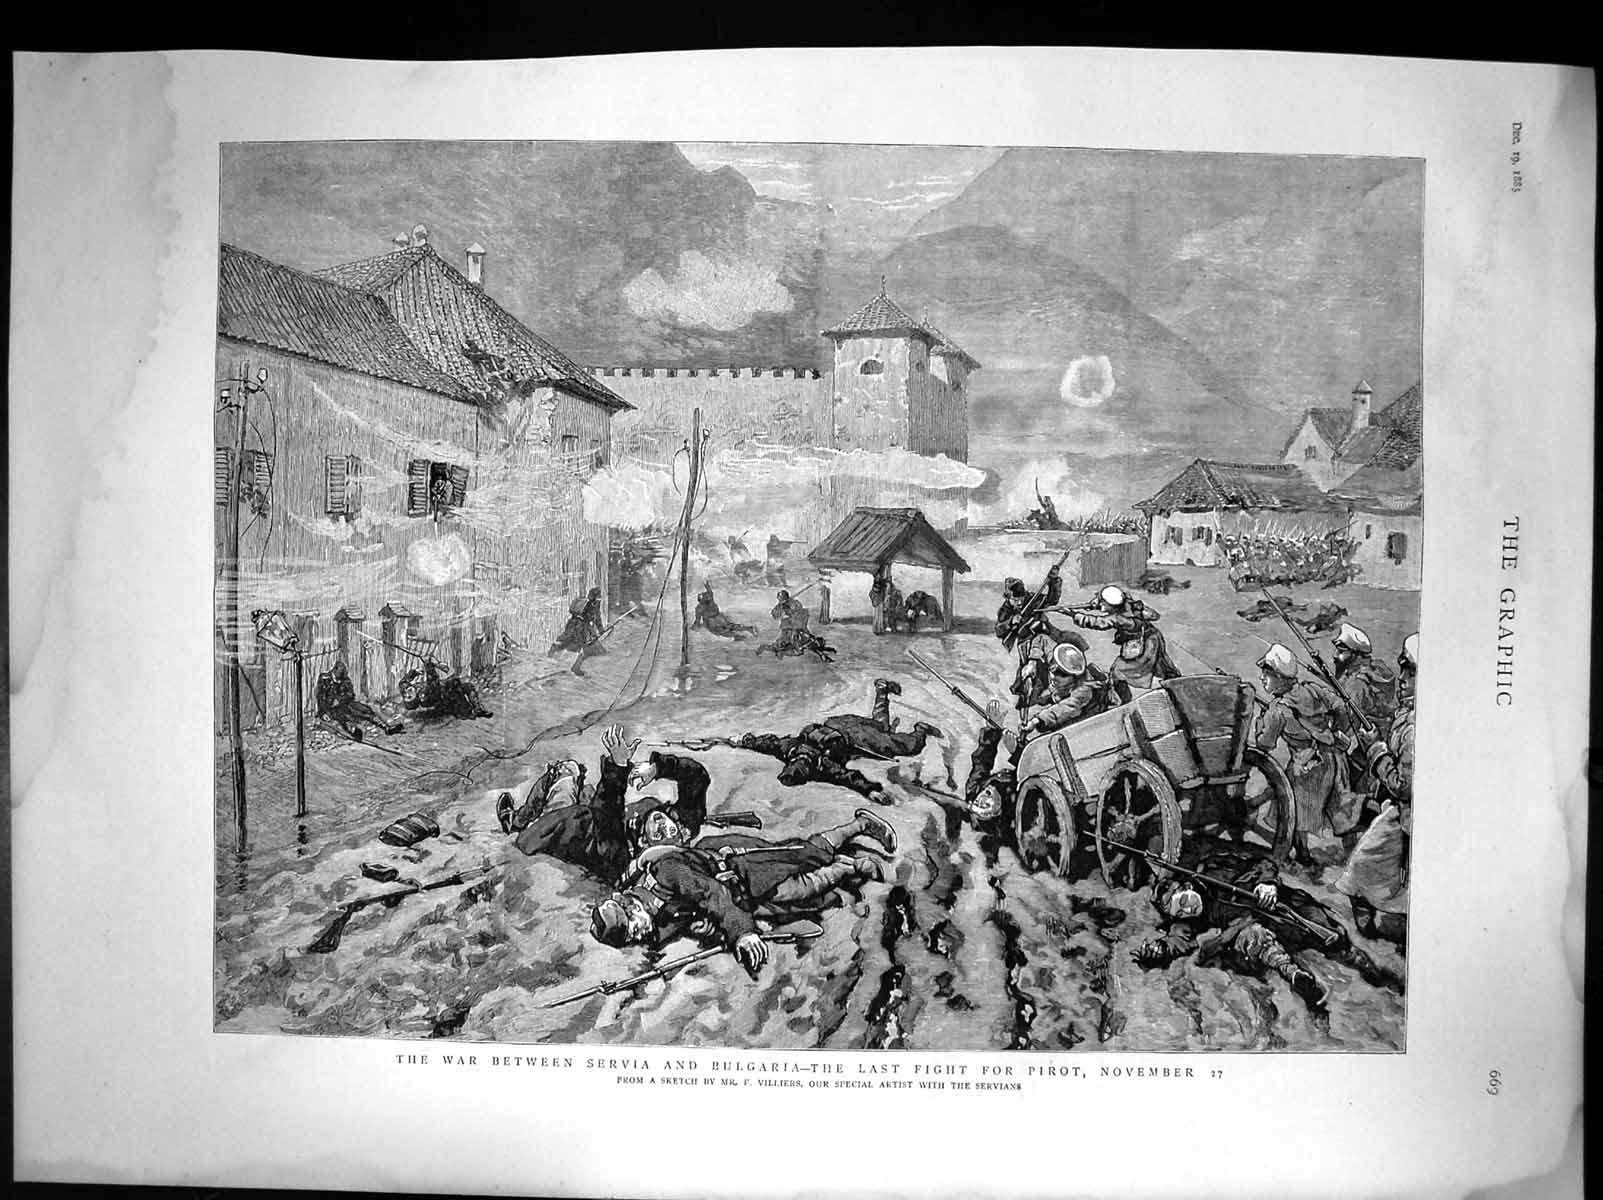 Antique-Print-War-Between-Servia-And-Bulgaria-The-Last-Fight-The-Pirot-1885